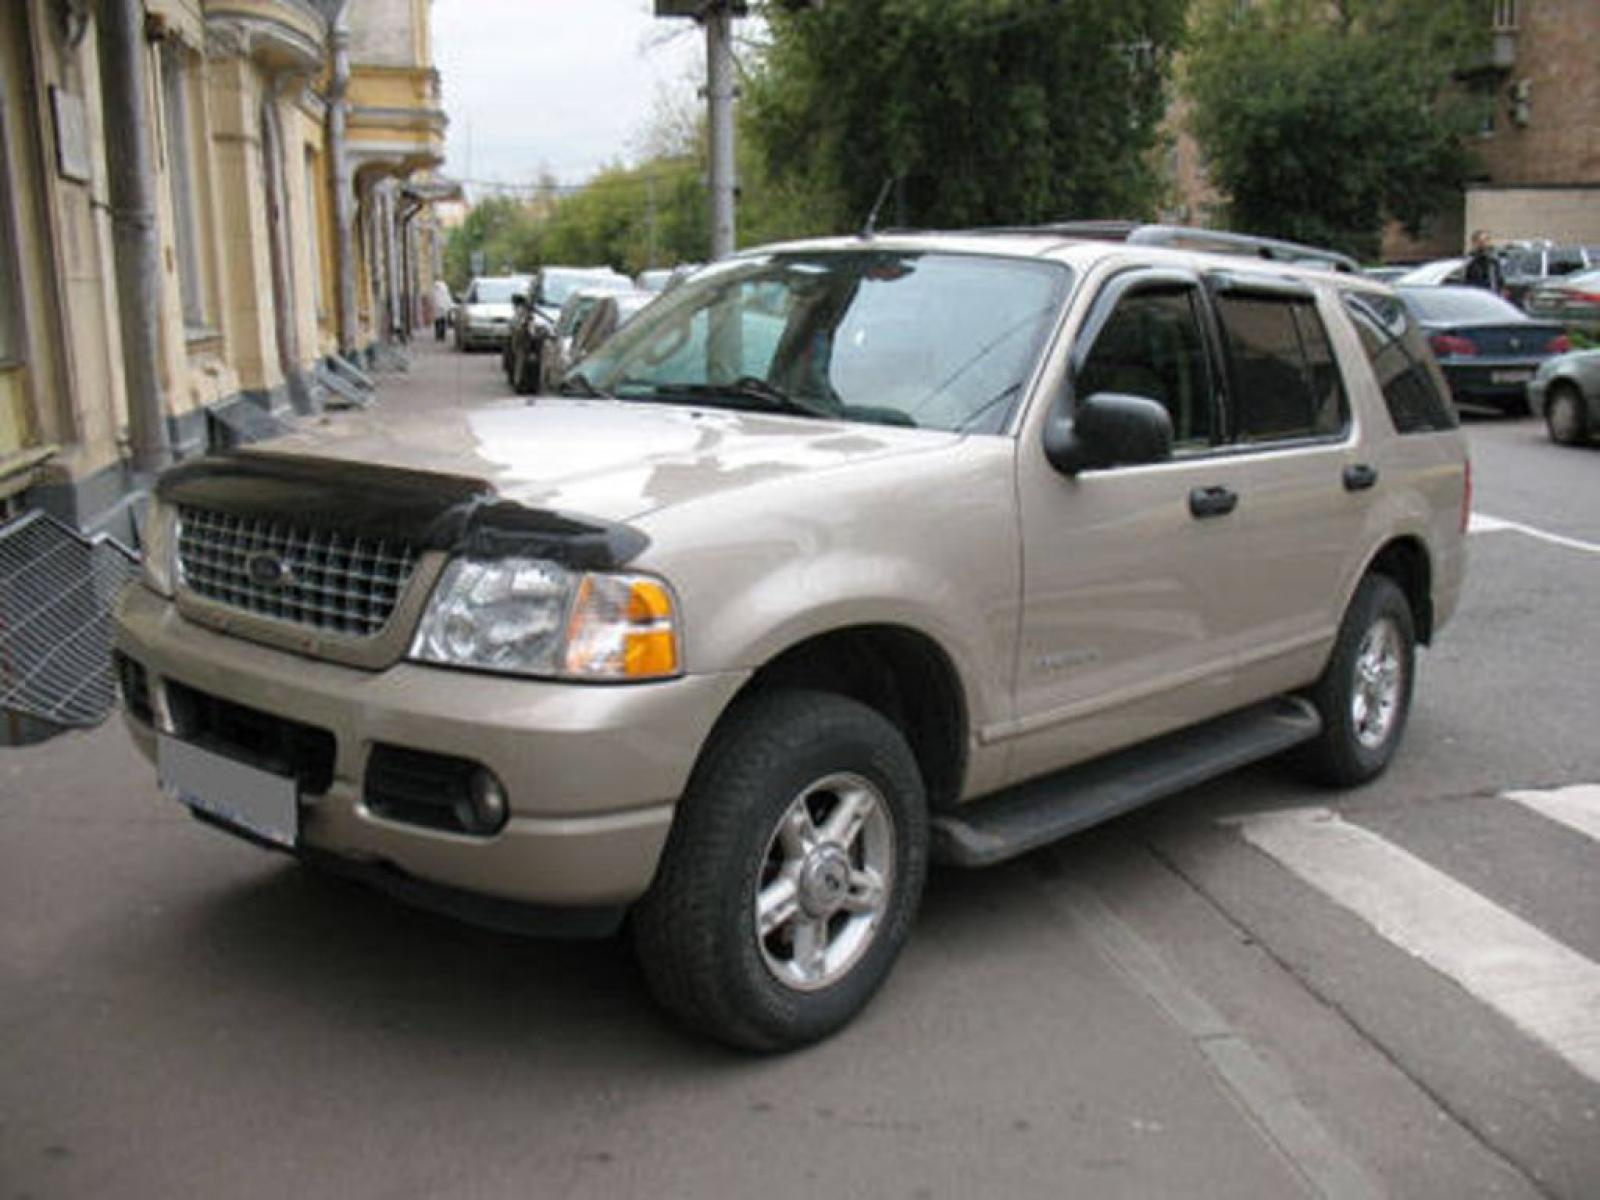 hight resolution of 800 1024 1280 1600 origin 2004 ford explorer